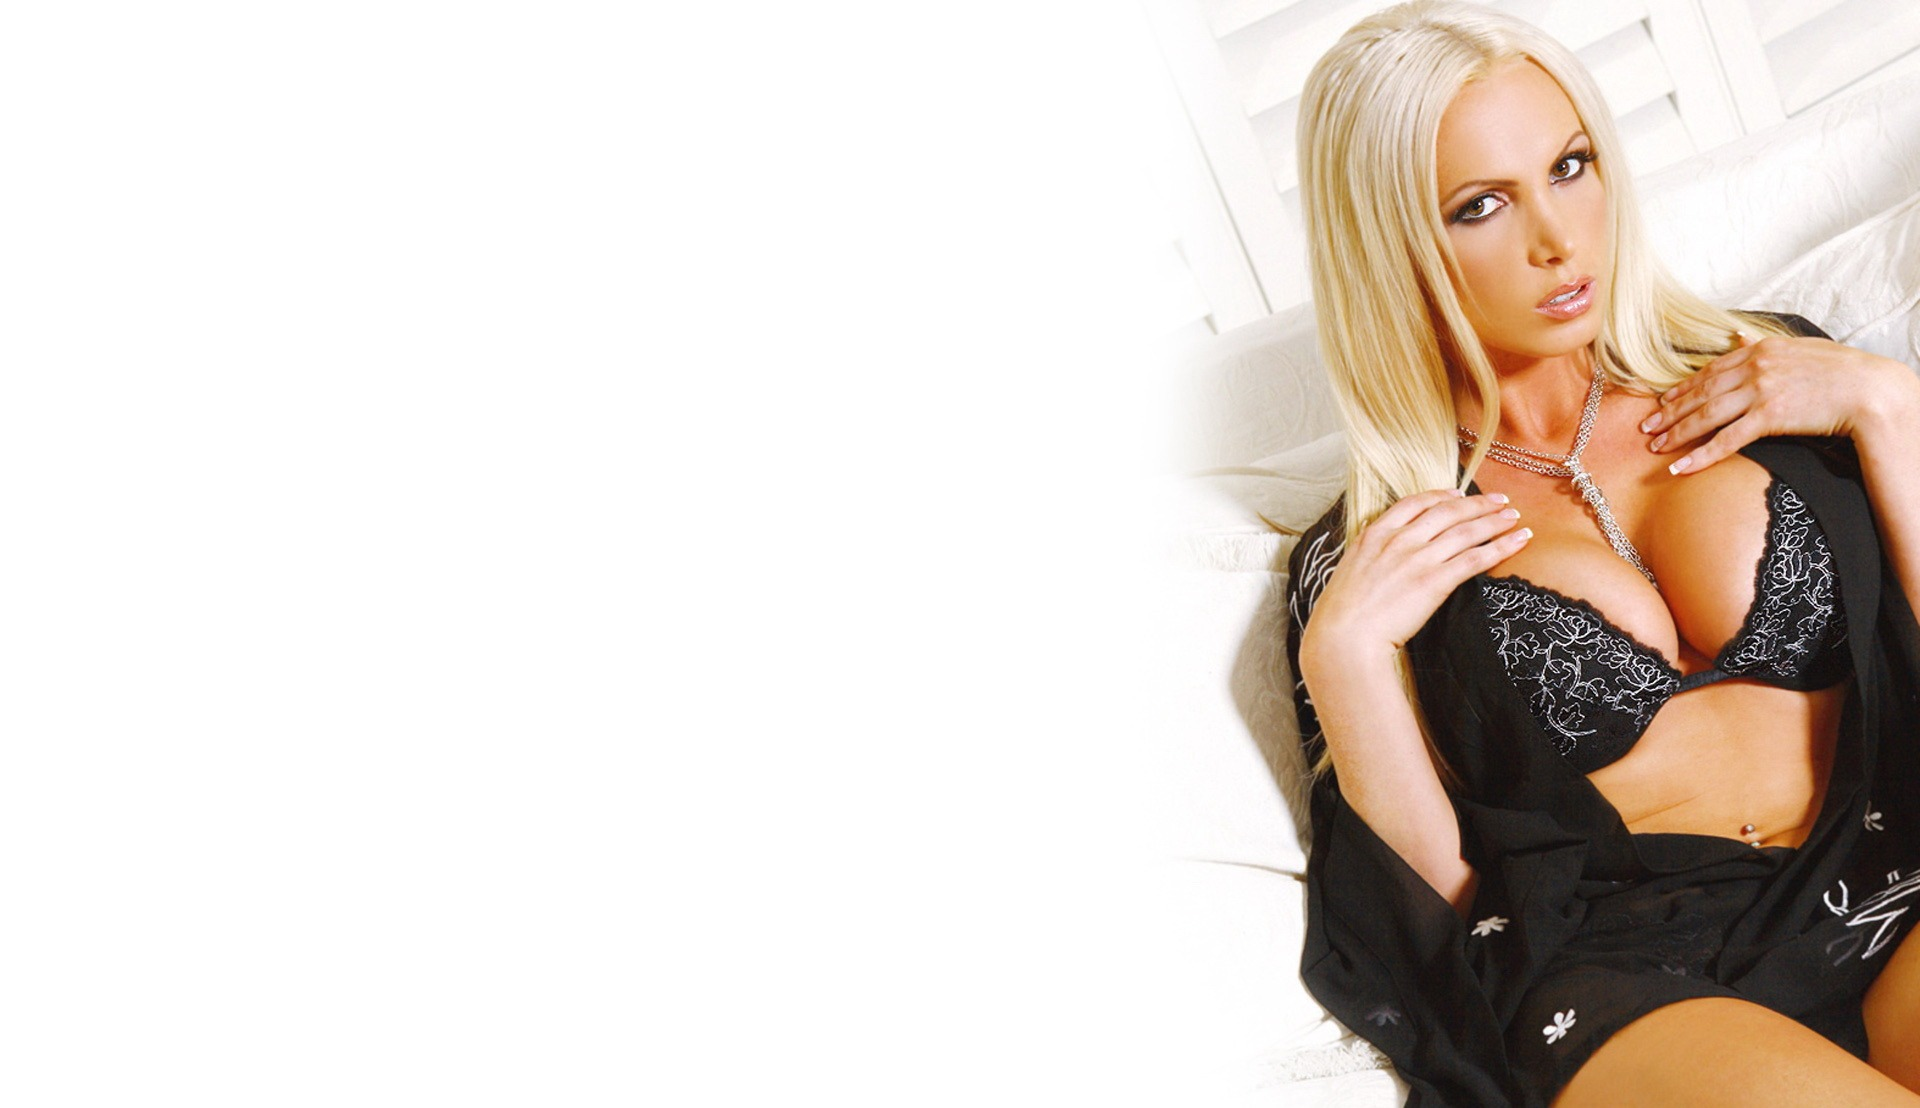 Nikki Benz High Definition Wallpapers